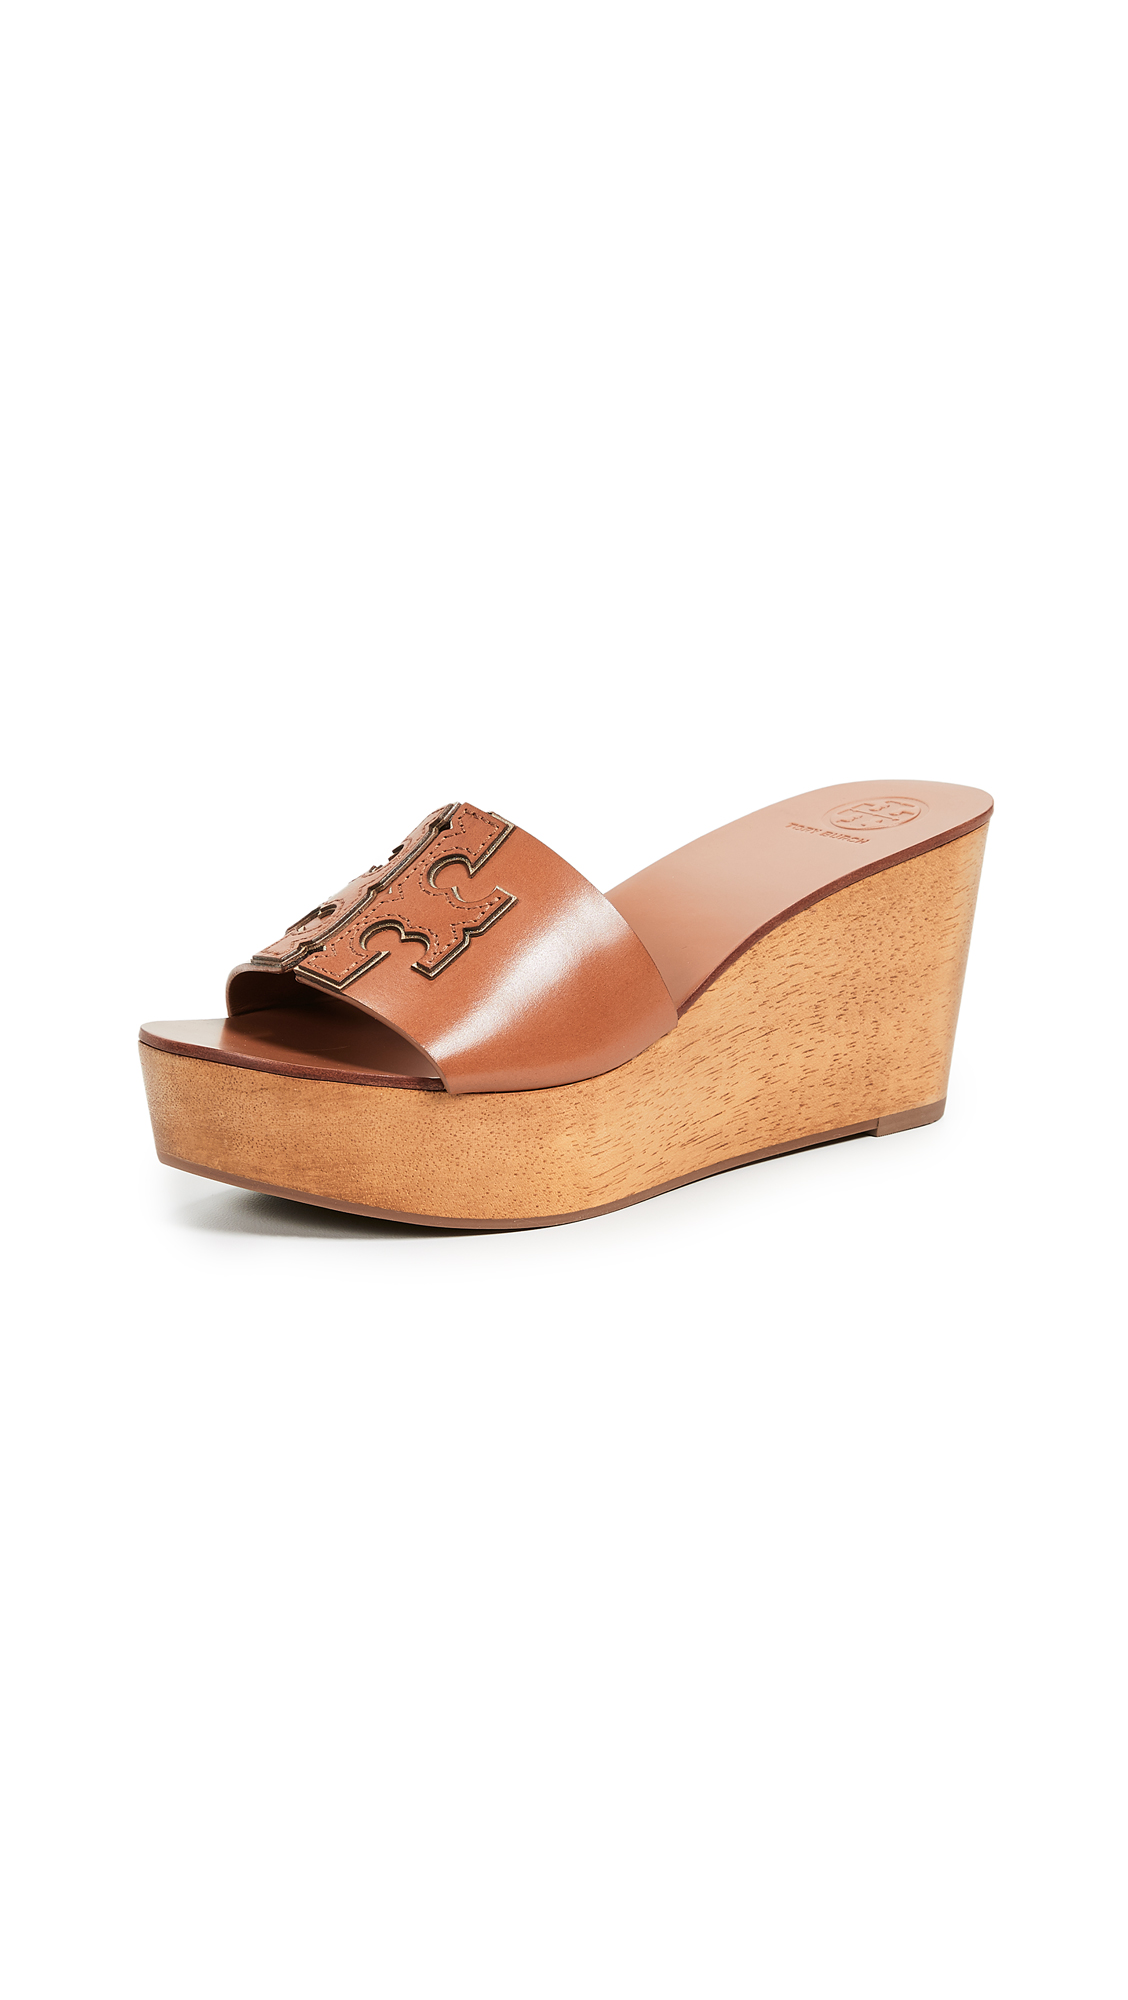 Tory Burch Ines 80mm Wedge Slides - Tan/Spark Gold